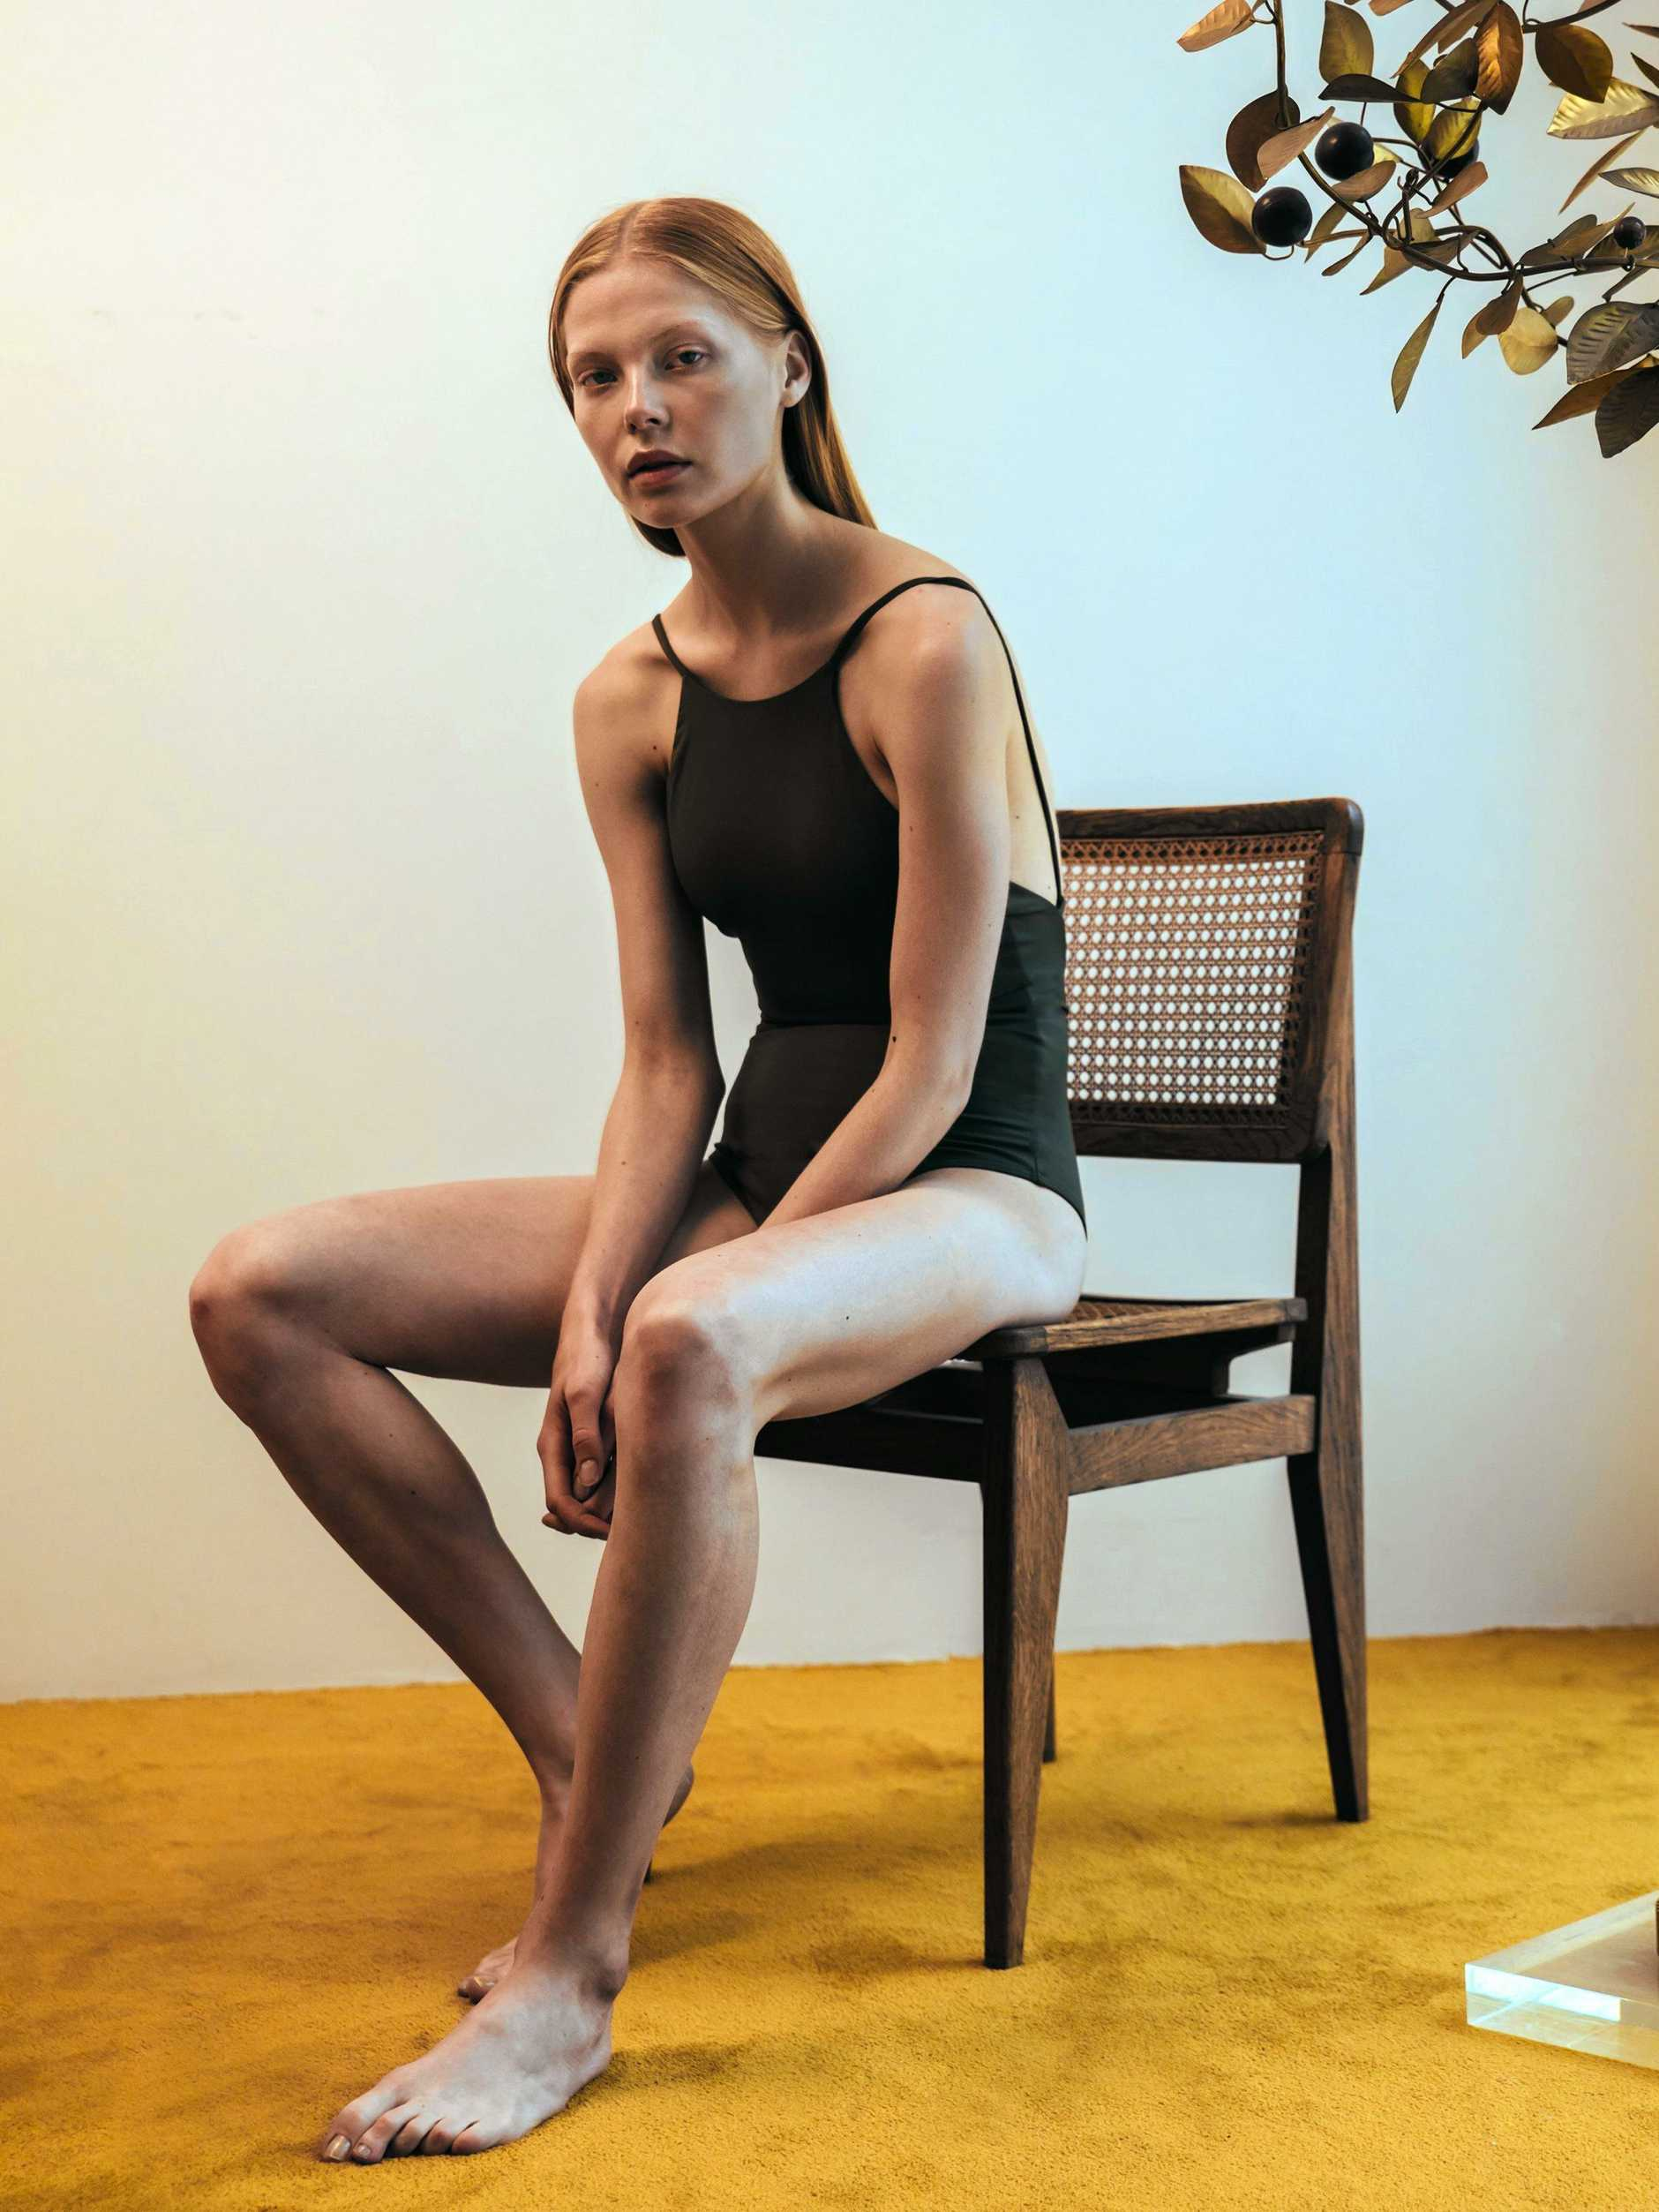 Images from minimalist fashion label Her Line, founded by Michael Lim. For Gold Coast Eye Fashion